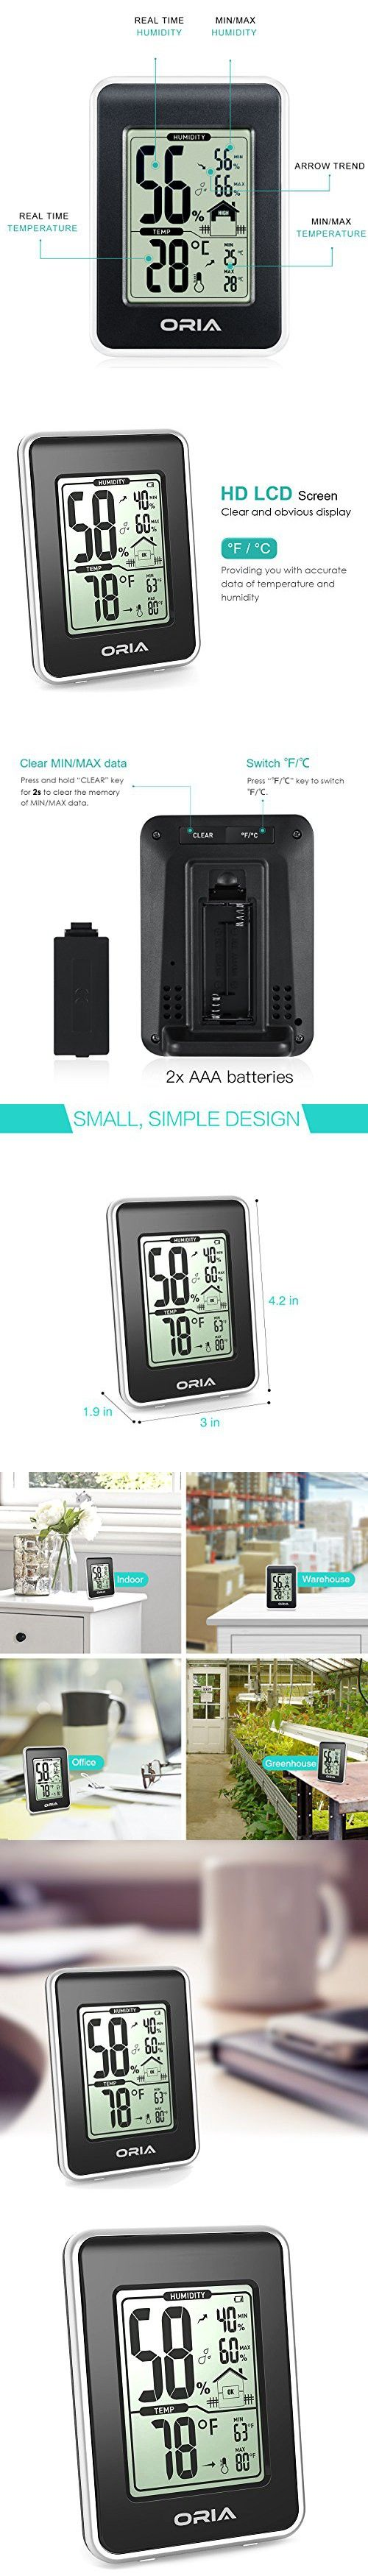 Oria hygrometer thermometer indoor digital weather station hygrothermograph multifunctional temperature and humidity monitor